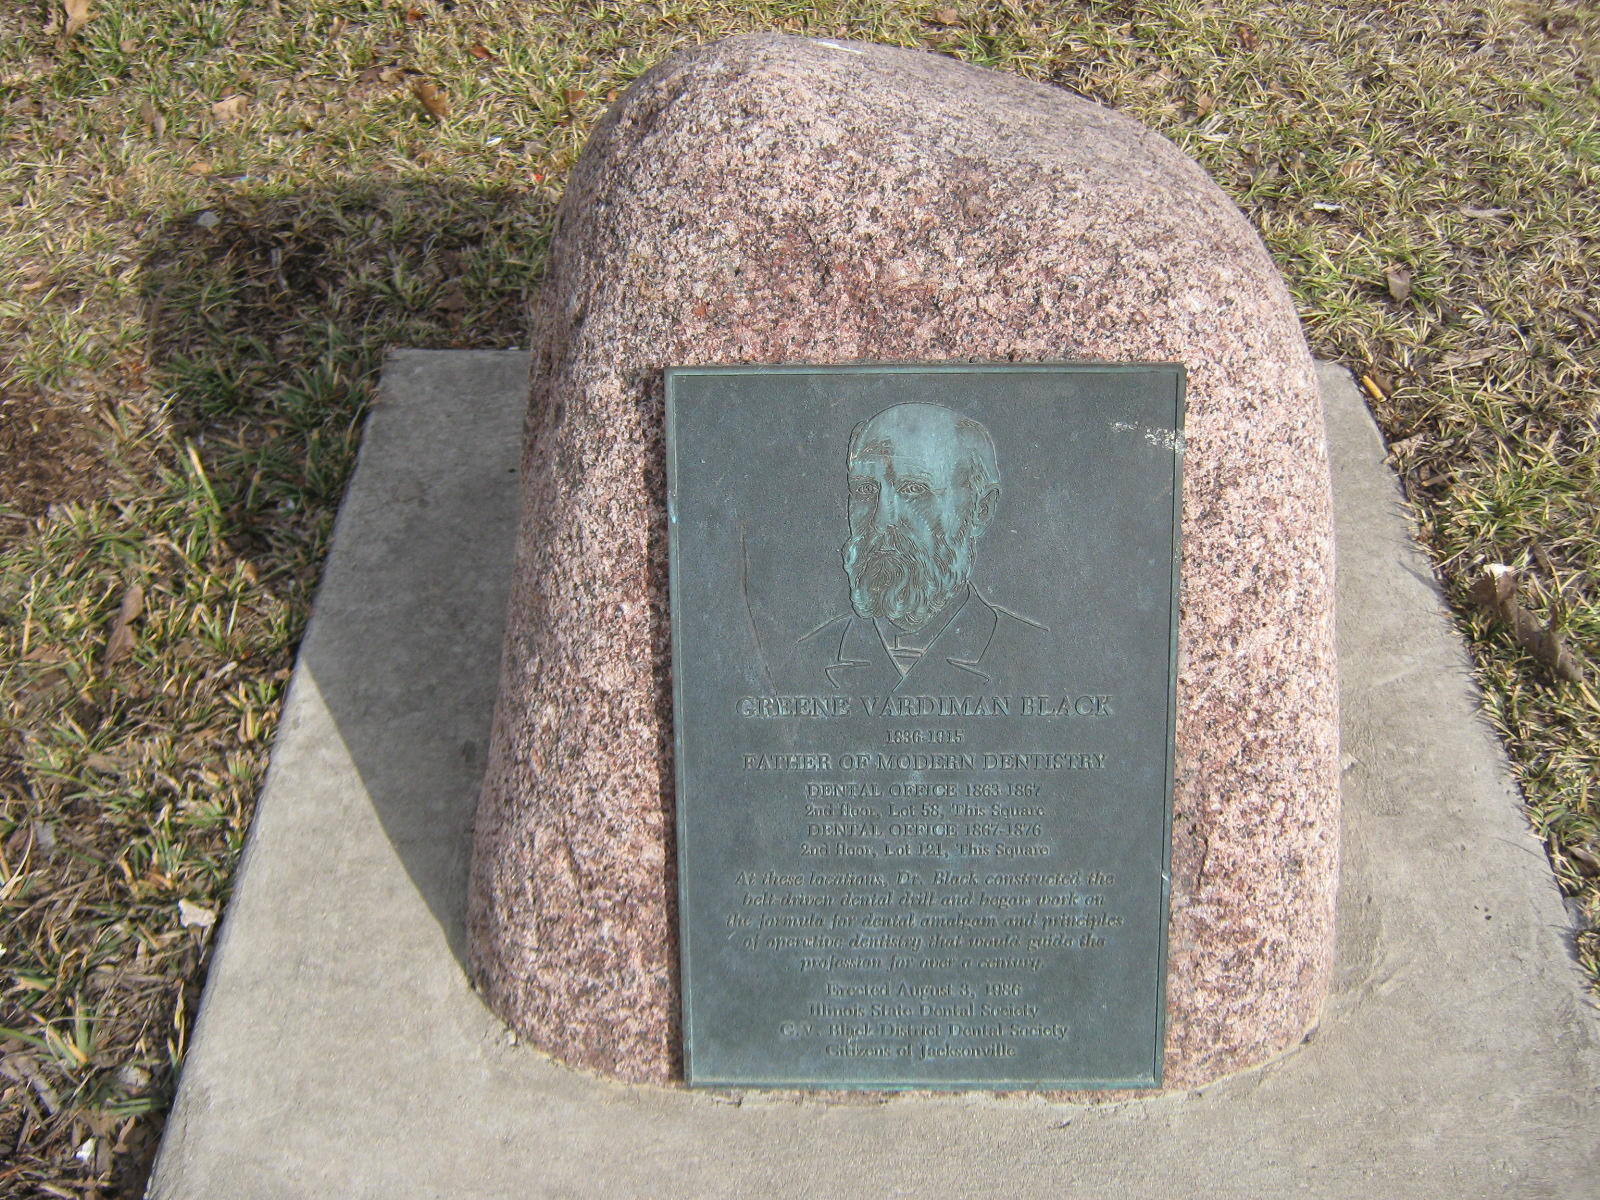 The marker is located on the south side of the square.